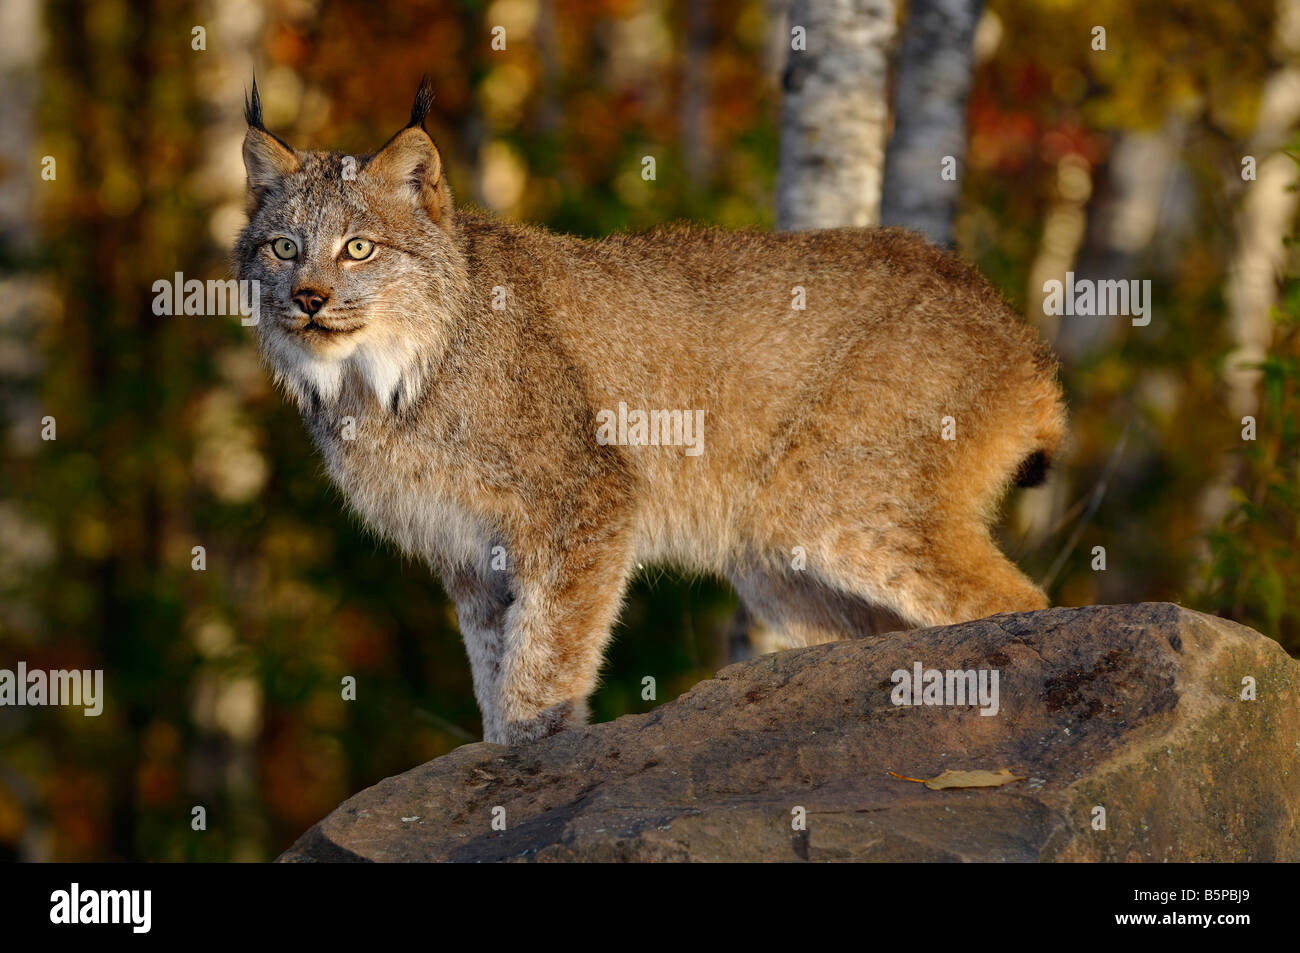 Staring Canadian Lynx standing on a rock in a birch forest in Autumn at sunrise - Stock Image